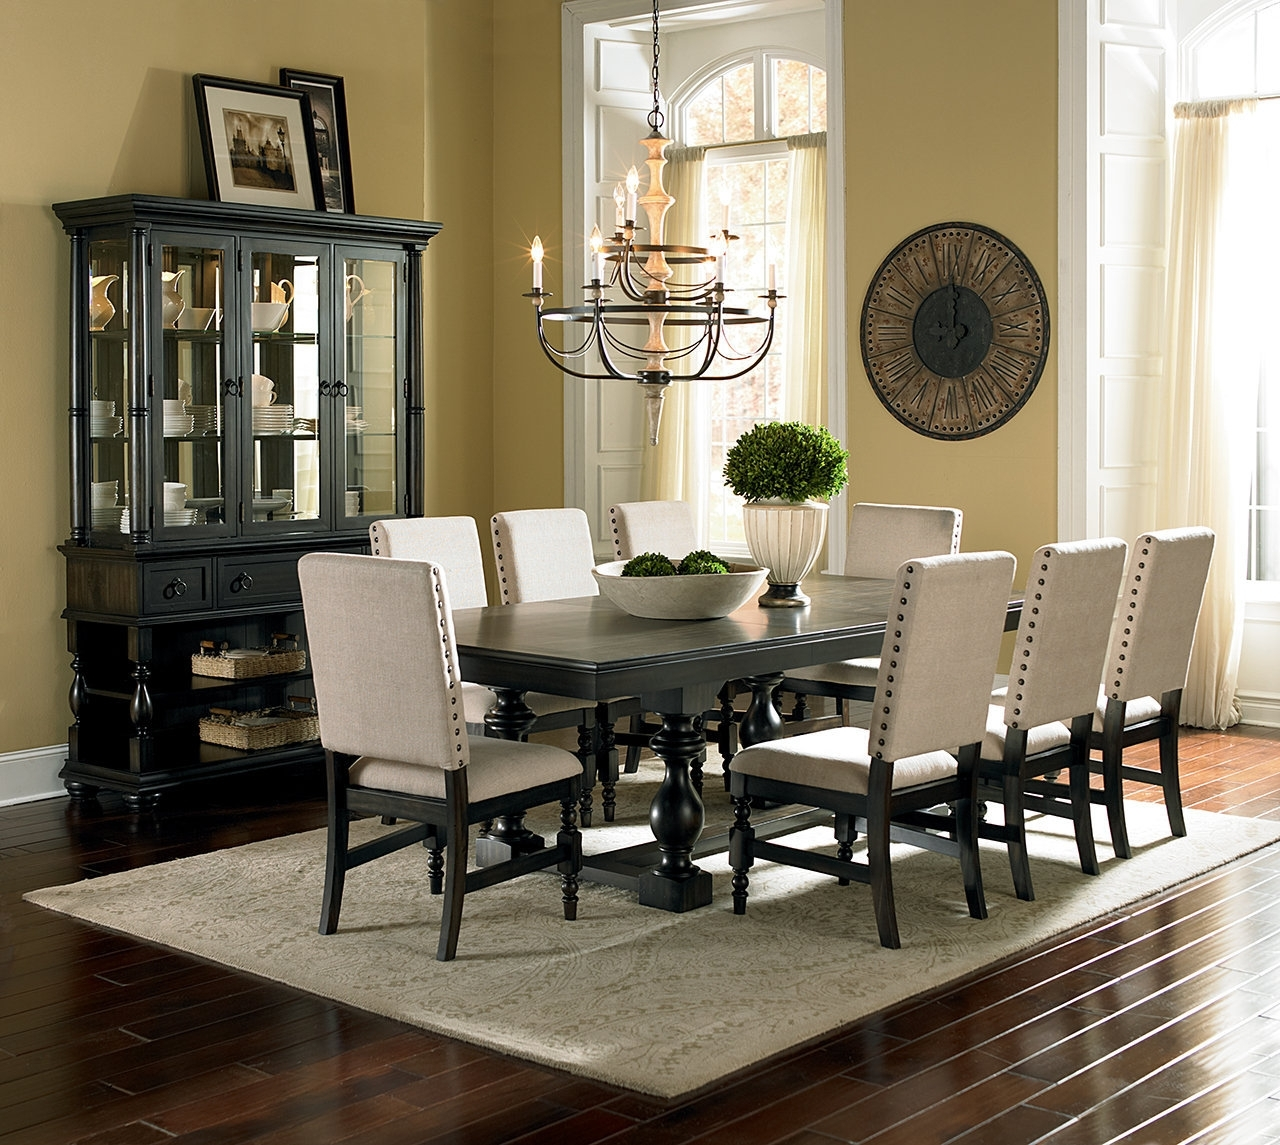 Norwood 6 Piece Rectangle Extension Dining Sets In Well Liked Plain Design Dining Room Sets With Fabric Chairs Norwood 6 Piece (Gallery 13 of 25)